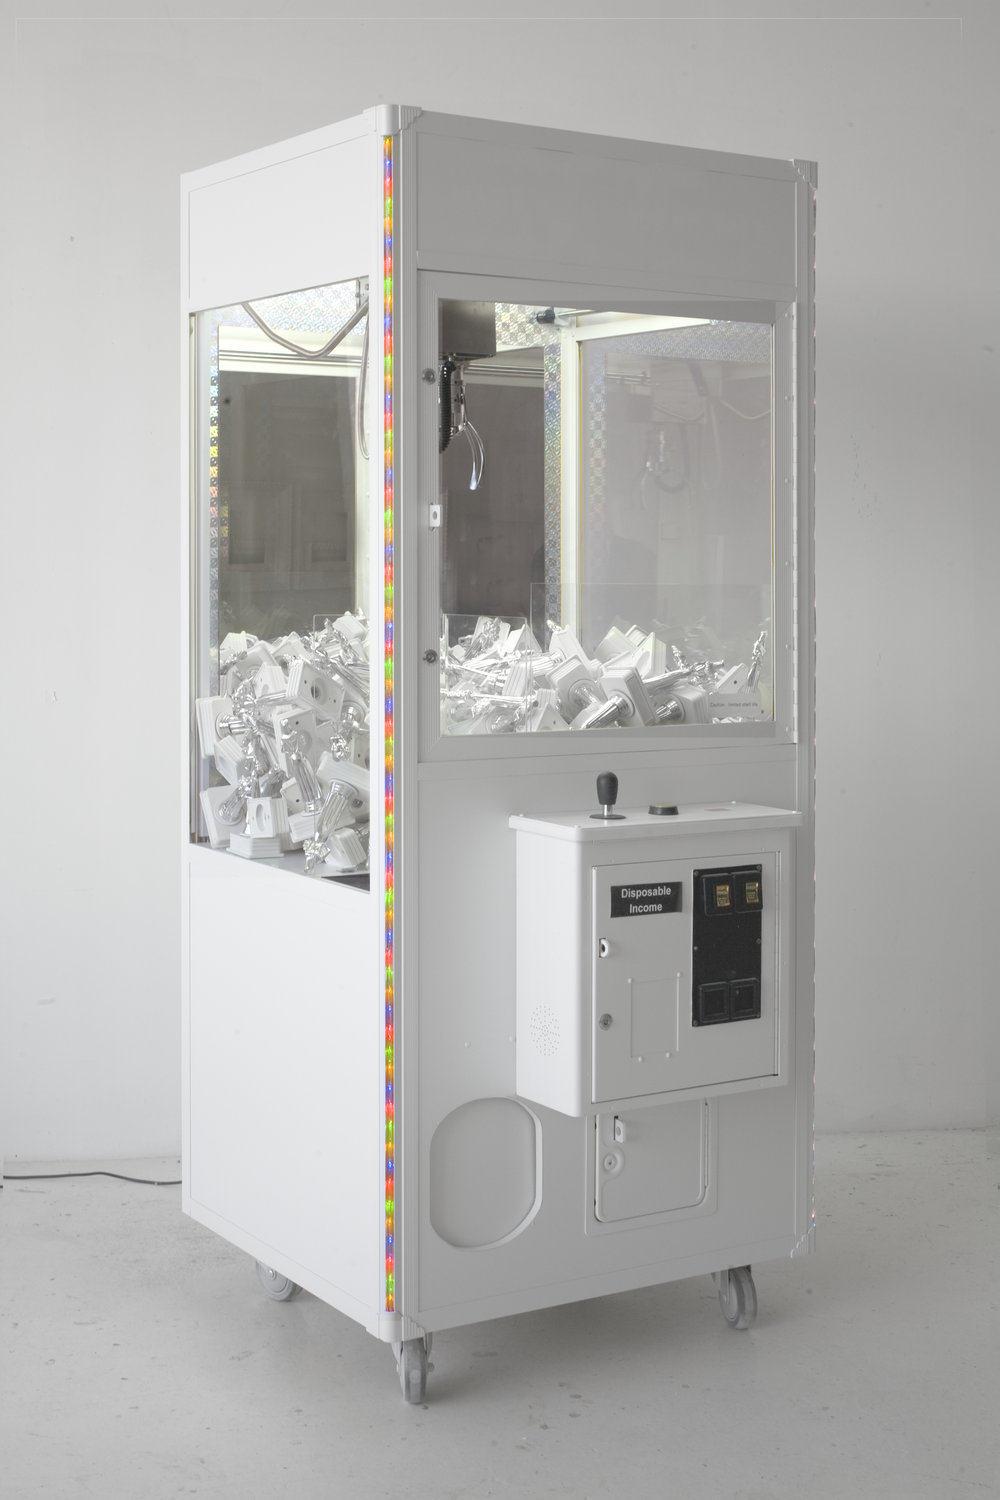 Beauty Queen Vending Machine , 2009  Mixed media installation  75 x 32 x 28 inches